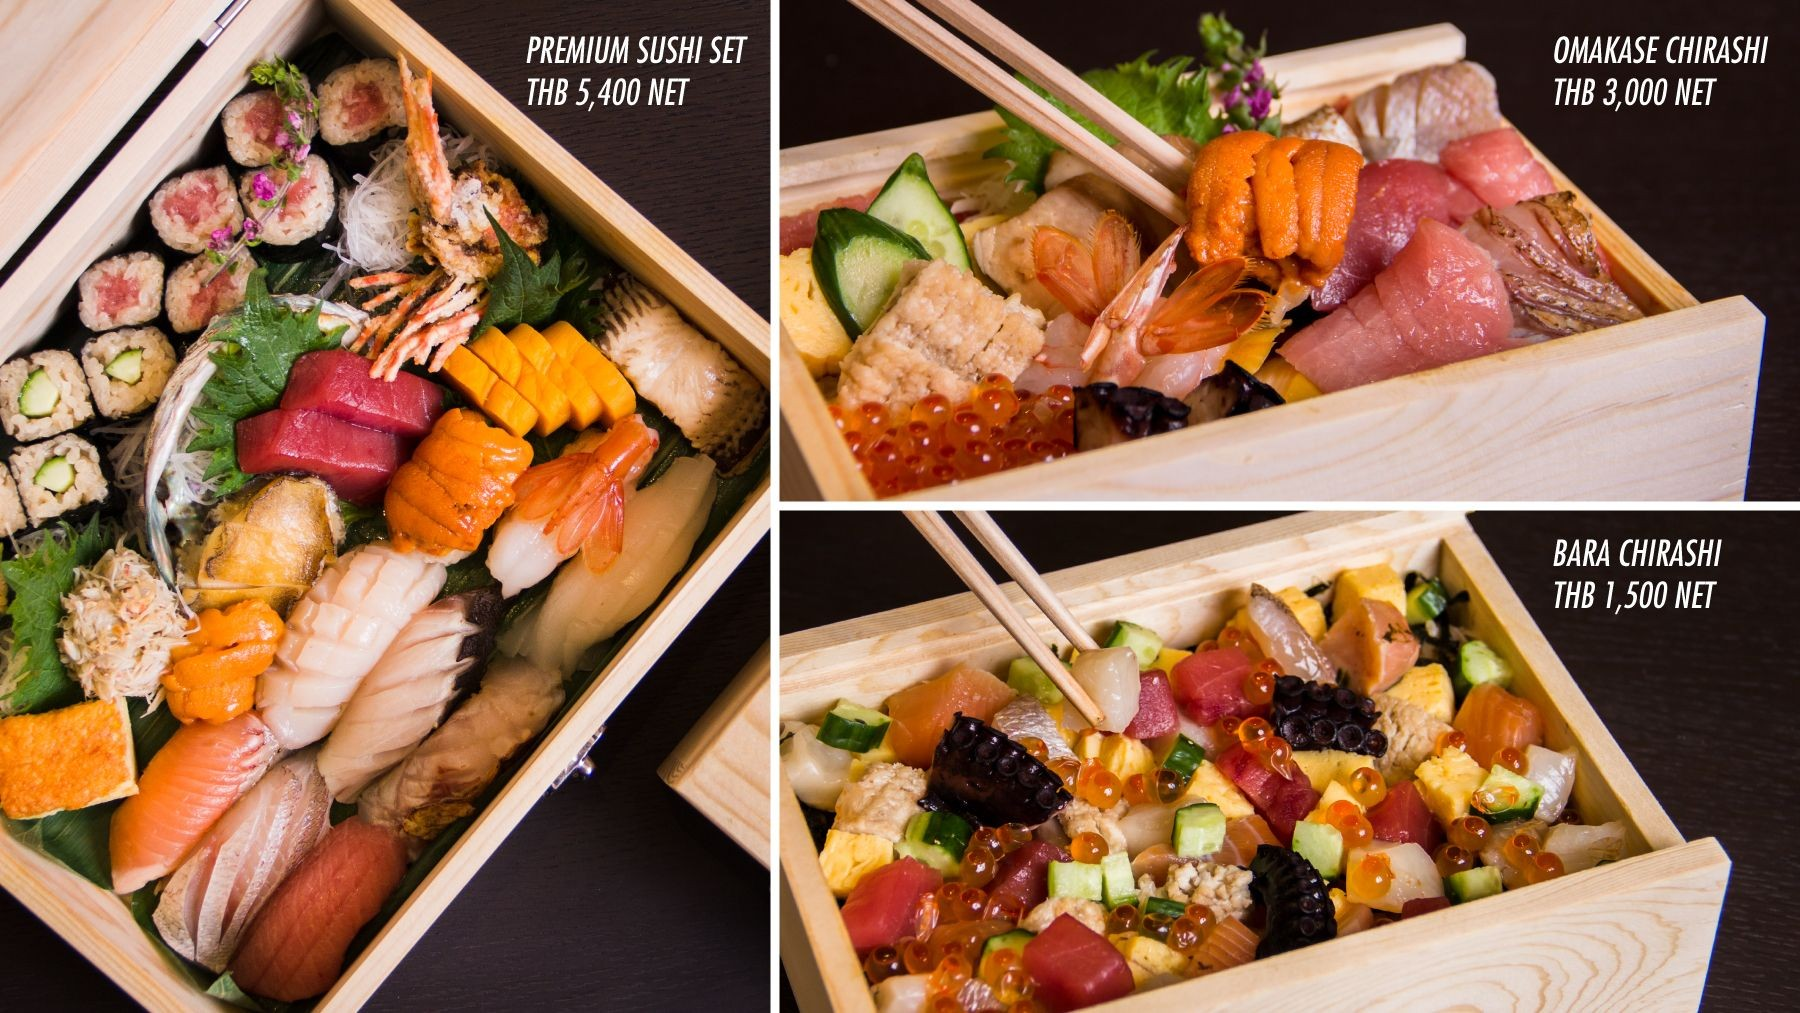 Omakase Box Delivery